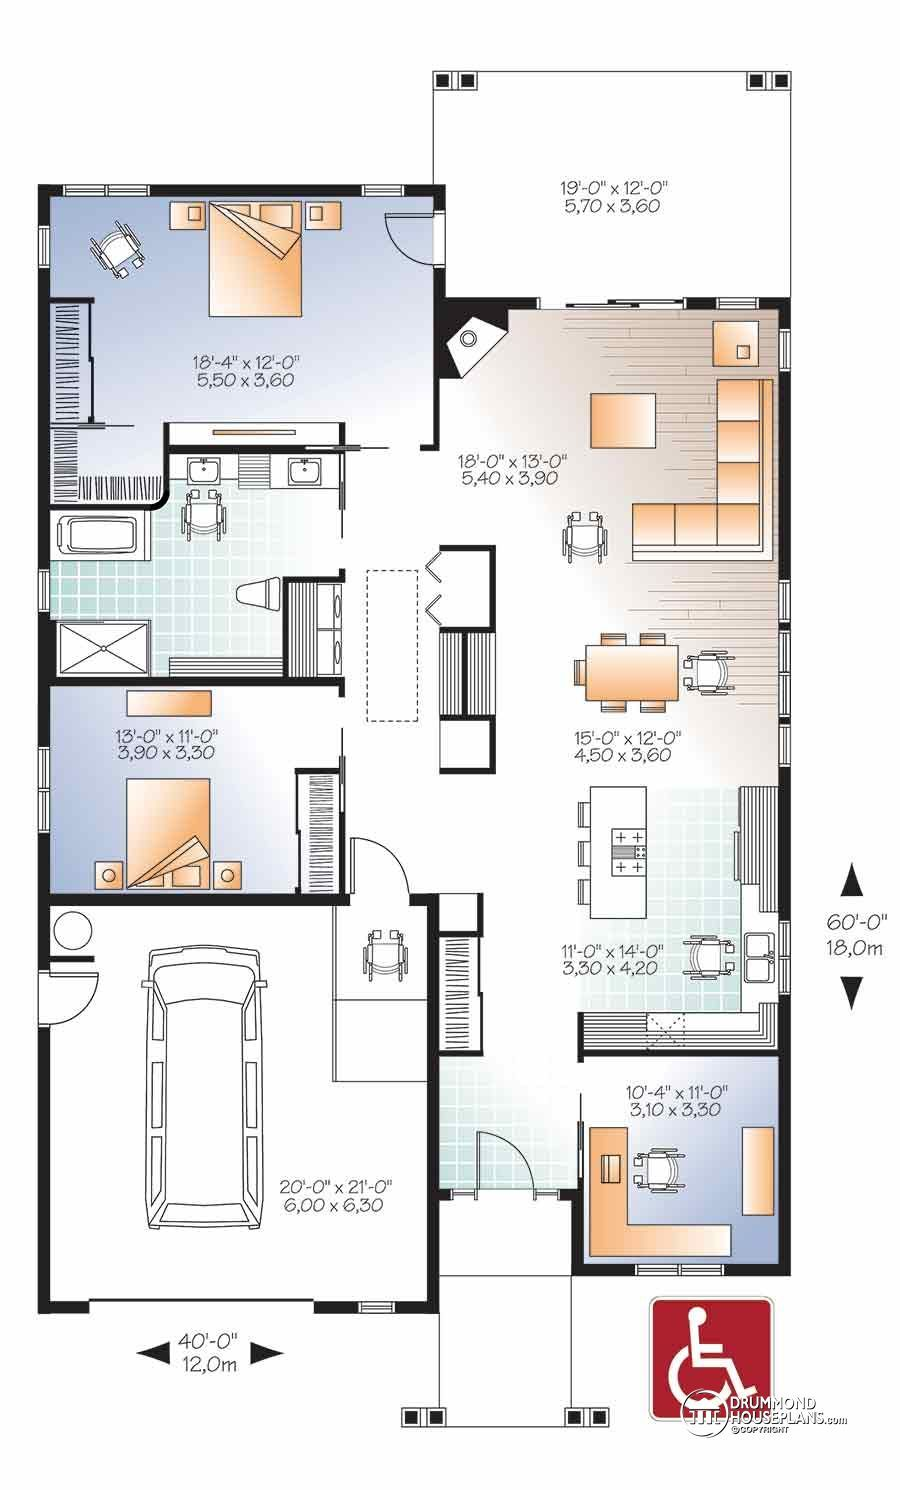 Pin By Latrice Jones On Wheelchair Accessible Accessible House Plans House Plans Accessible House